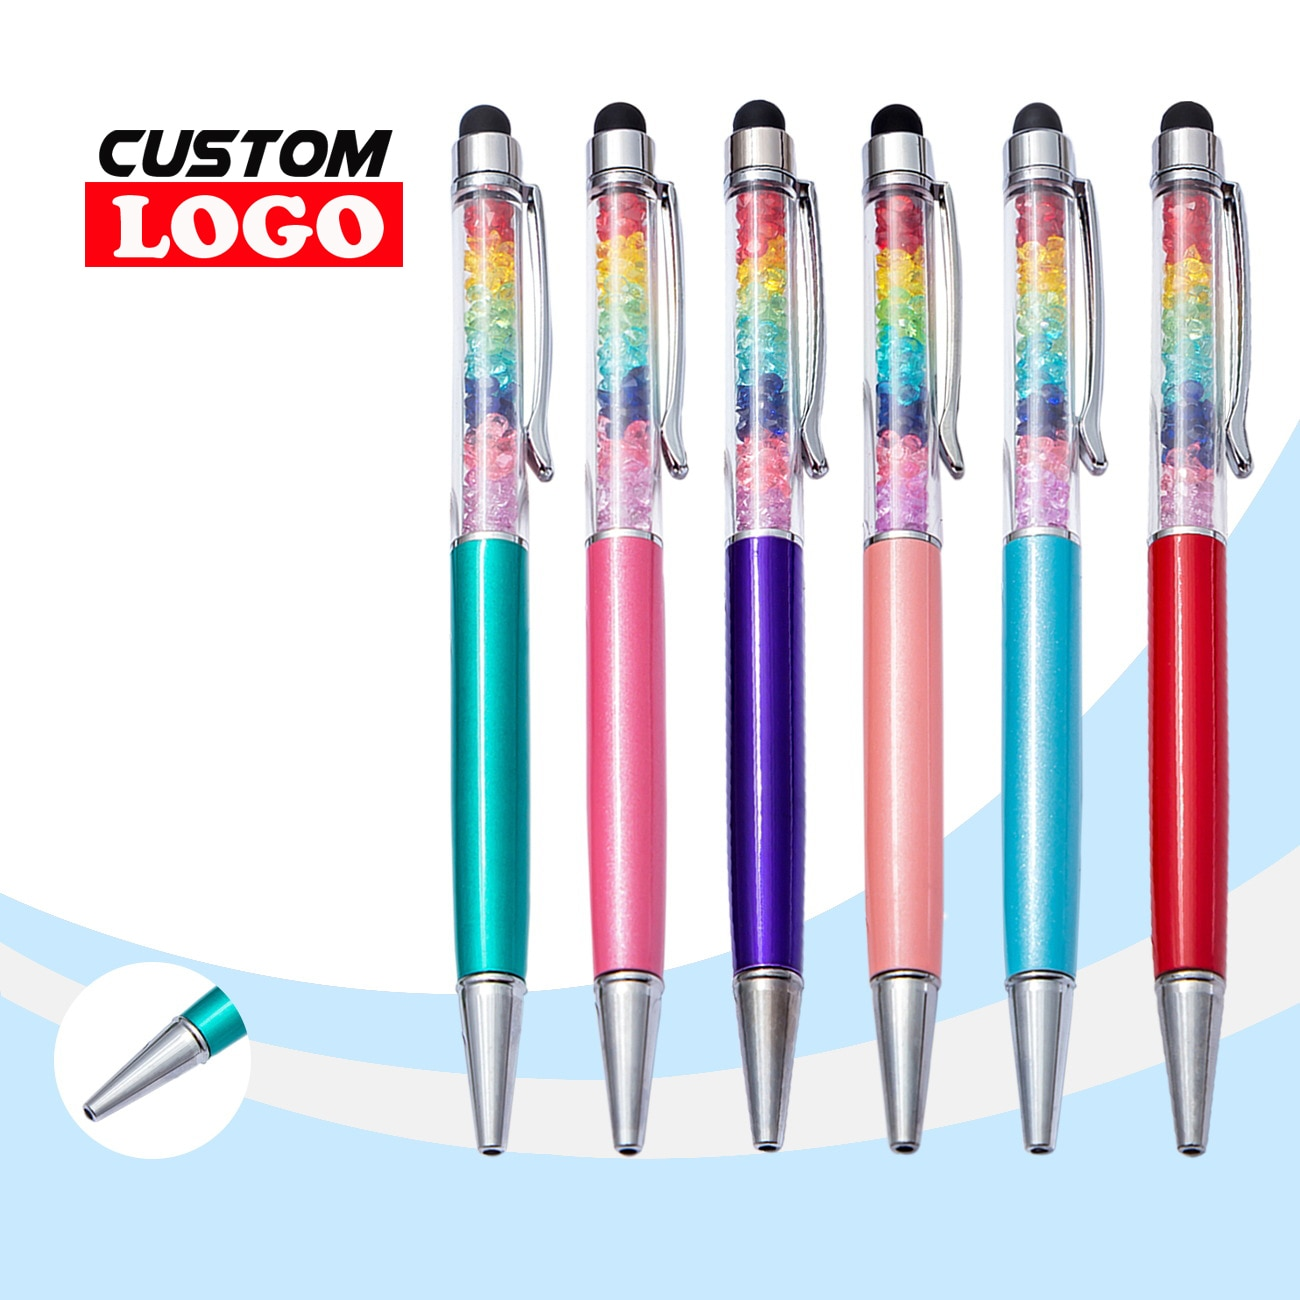 1000pcs-lot-2-in-1-rainbow-ballpoint-pen-universal-stylus-drawing-touch-screen-for-ipad-tablet-android-smartphone-accessories